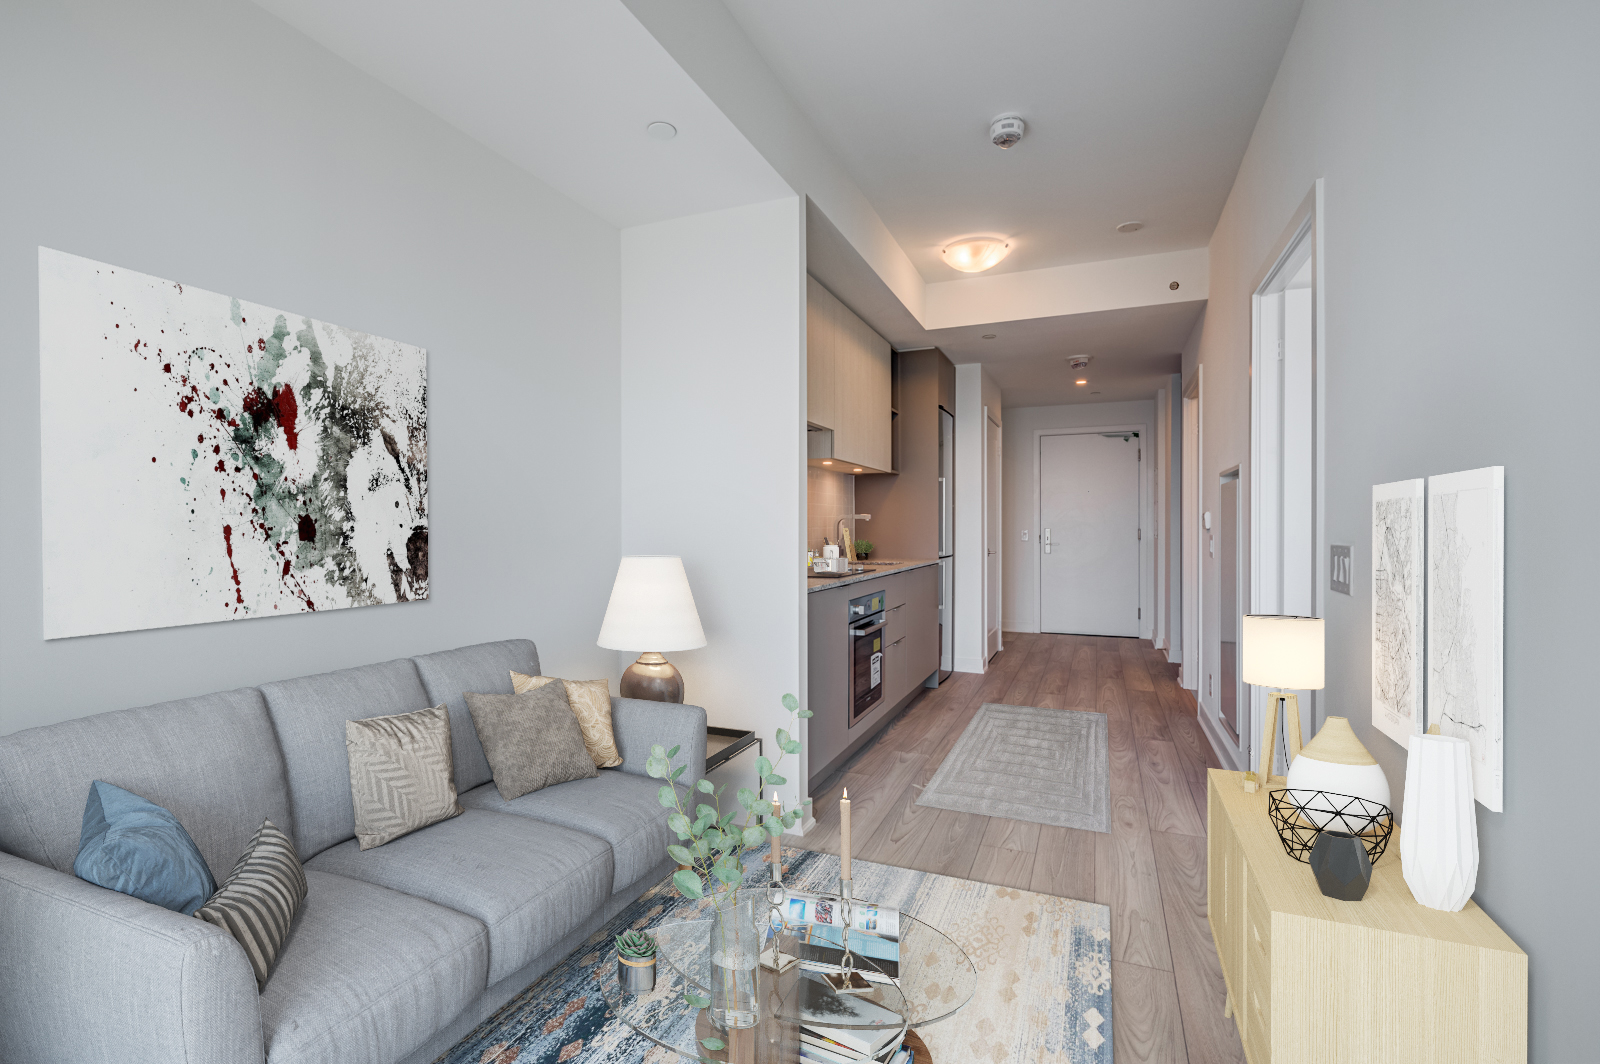 120 Parliament St Unit 1610, condo unit with linear design.